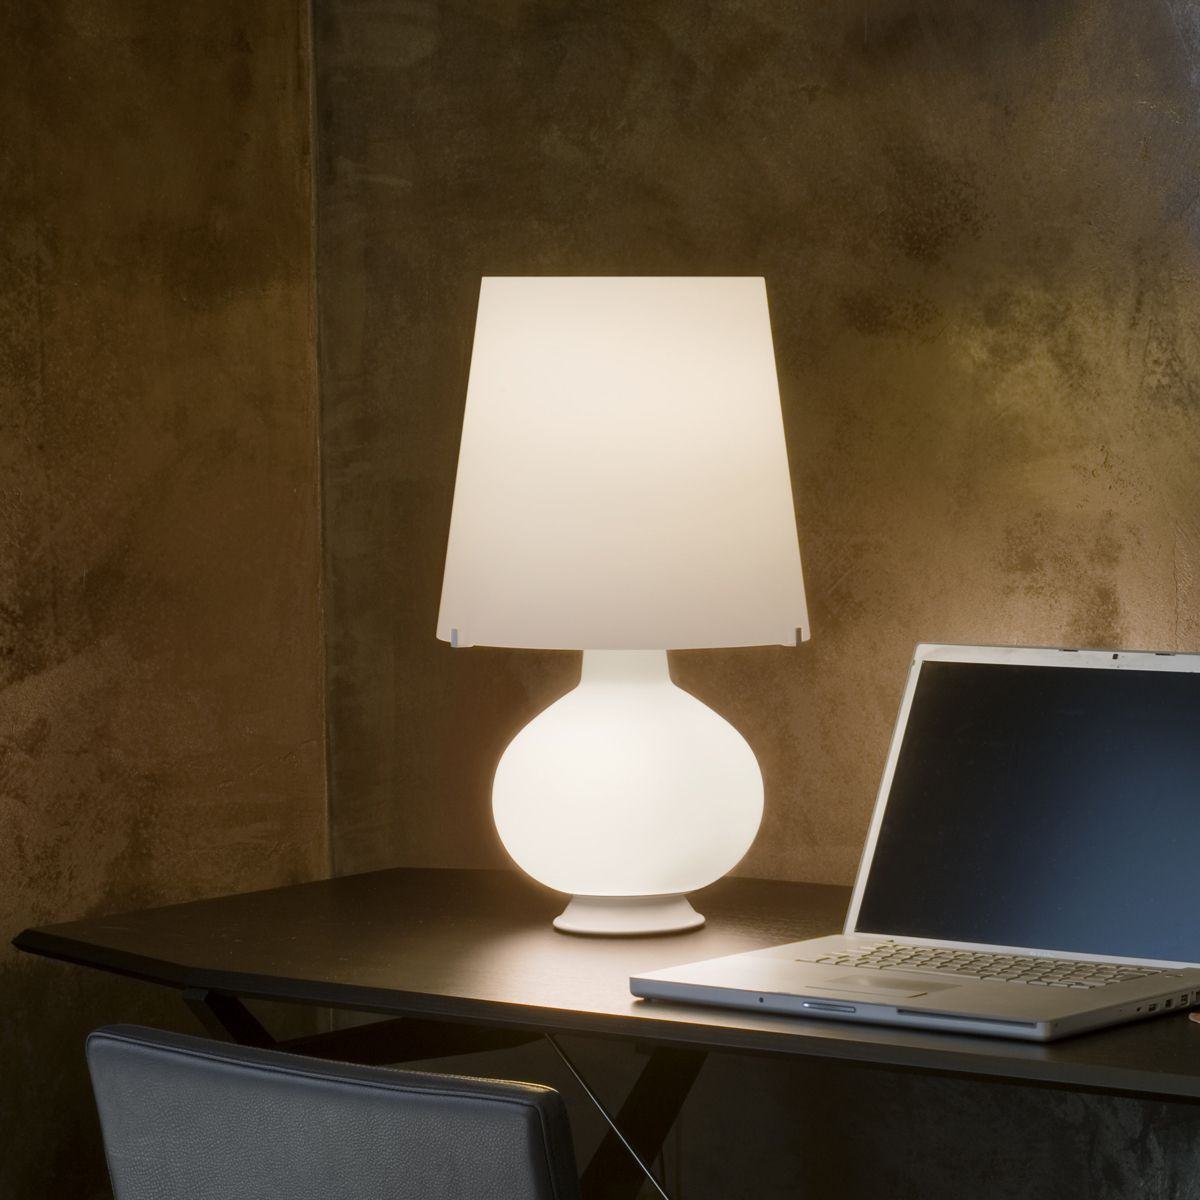 Pin By Kidmarked Studios On Architecture Home Cool Lighting Lamp Table Lamp